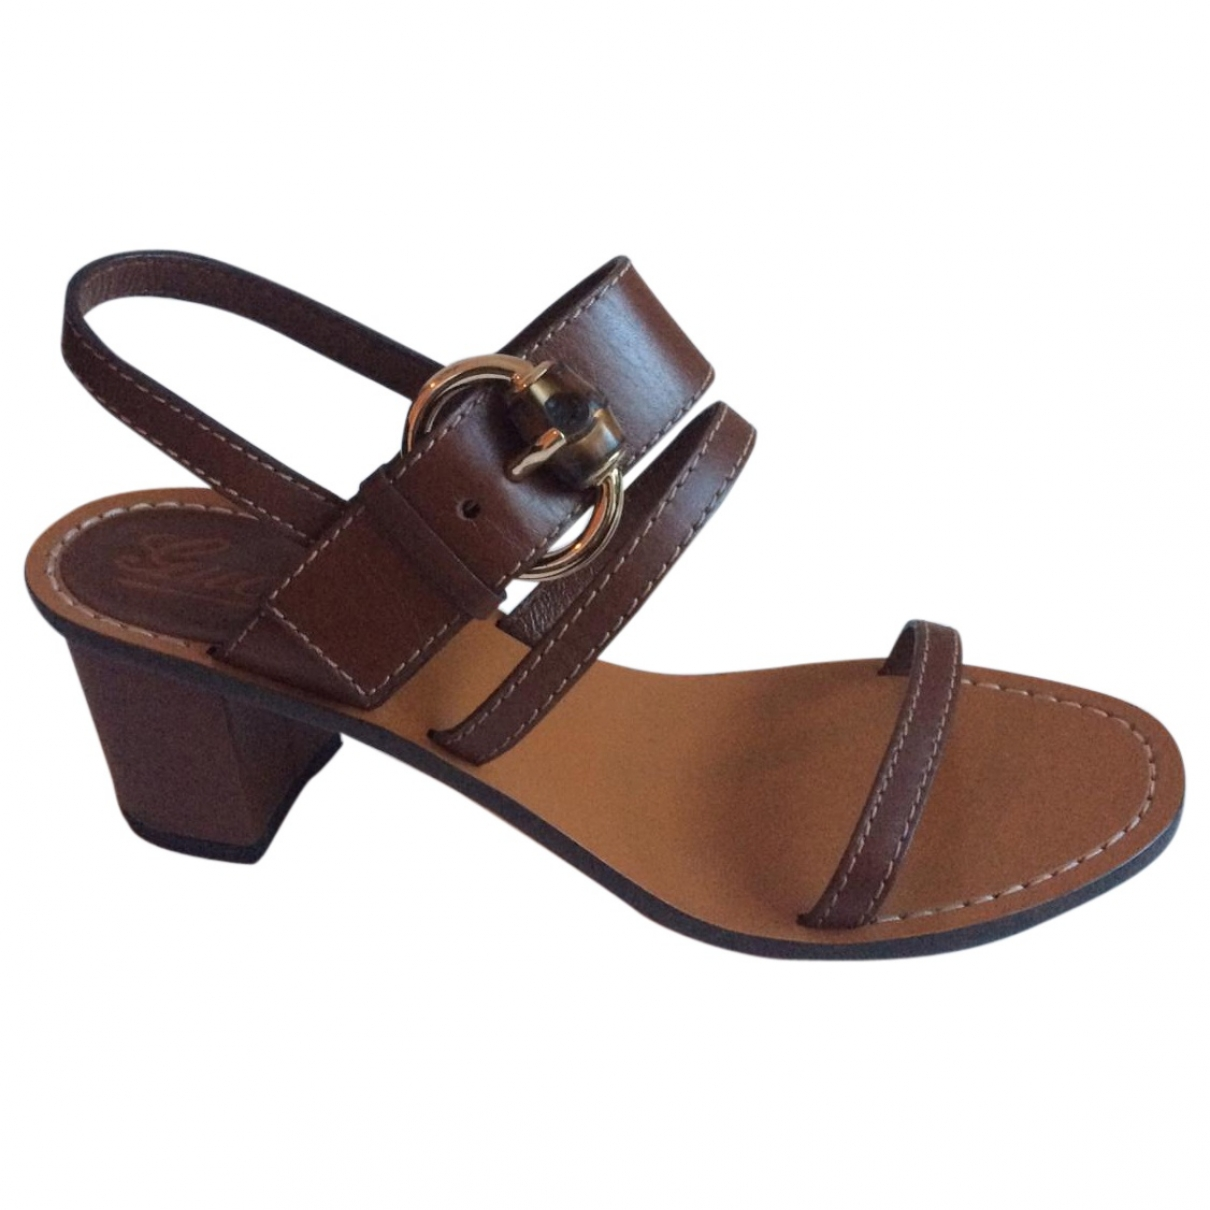 Gucci \N Brown Leather Sandals for Women 4 UK